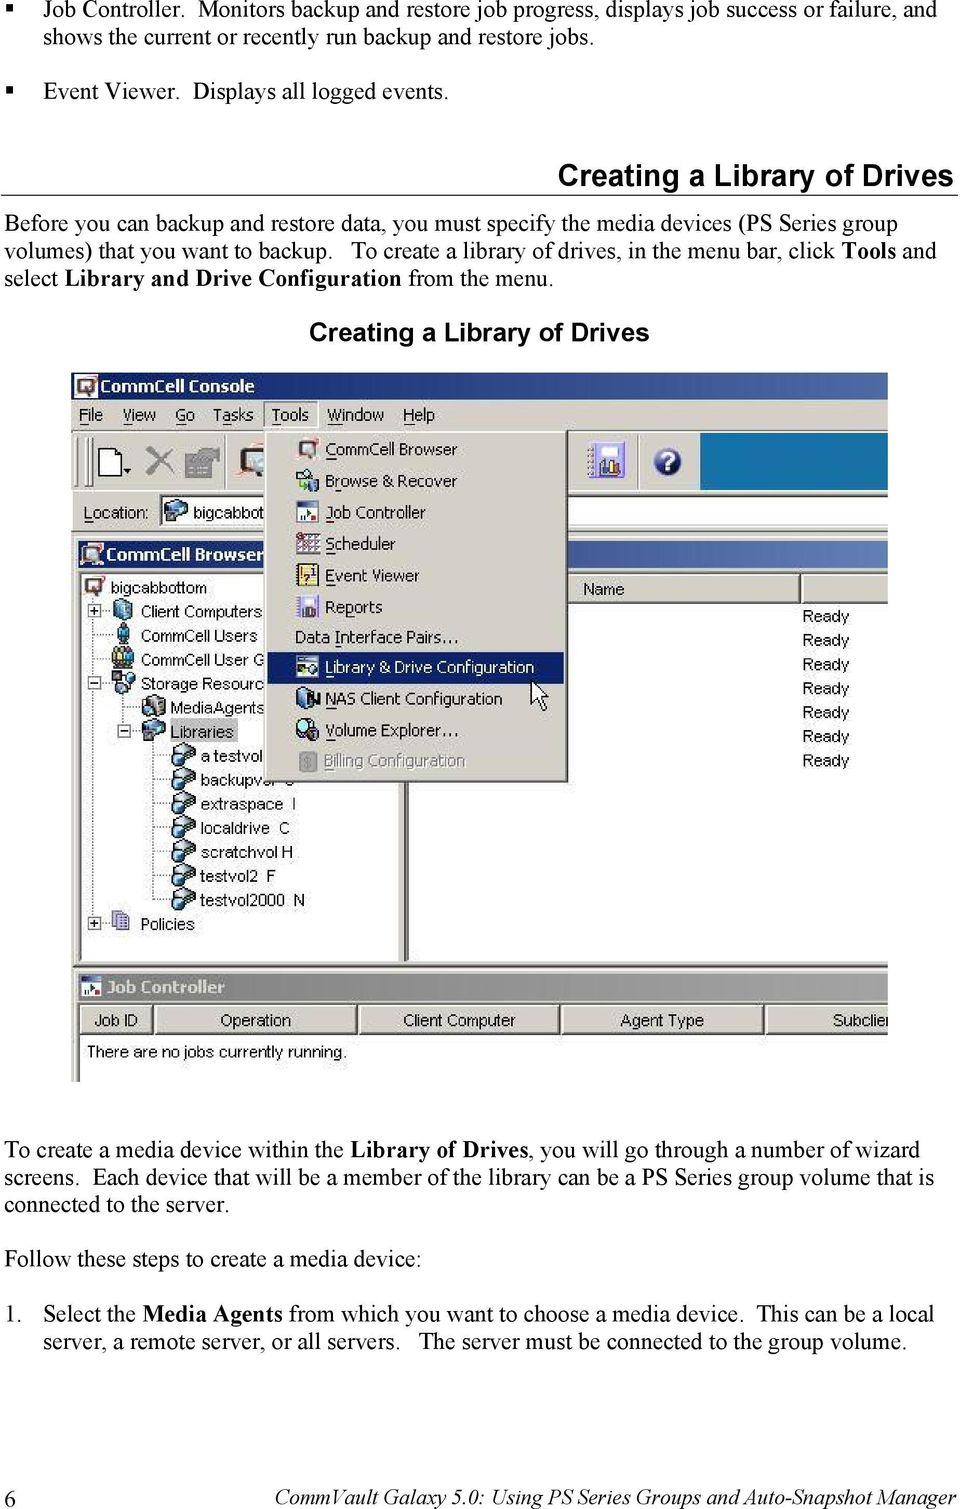 To create a library of drives, in the menu bar, click Tools and select Library and Drive Configuration from the menu.